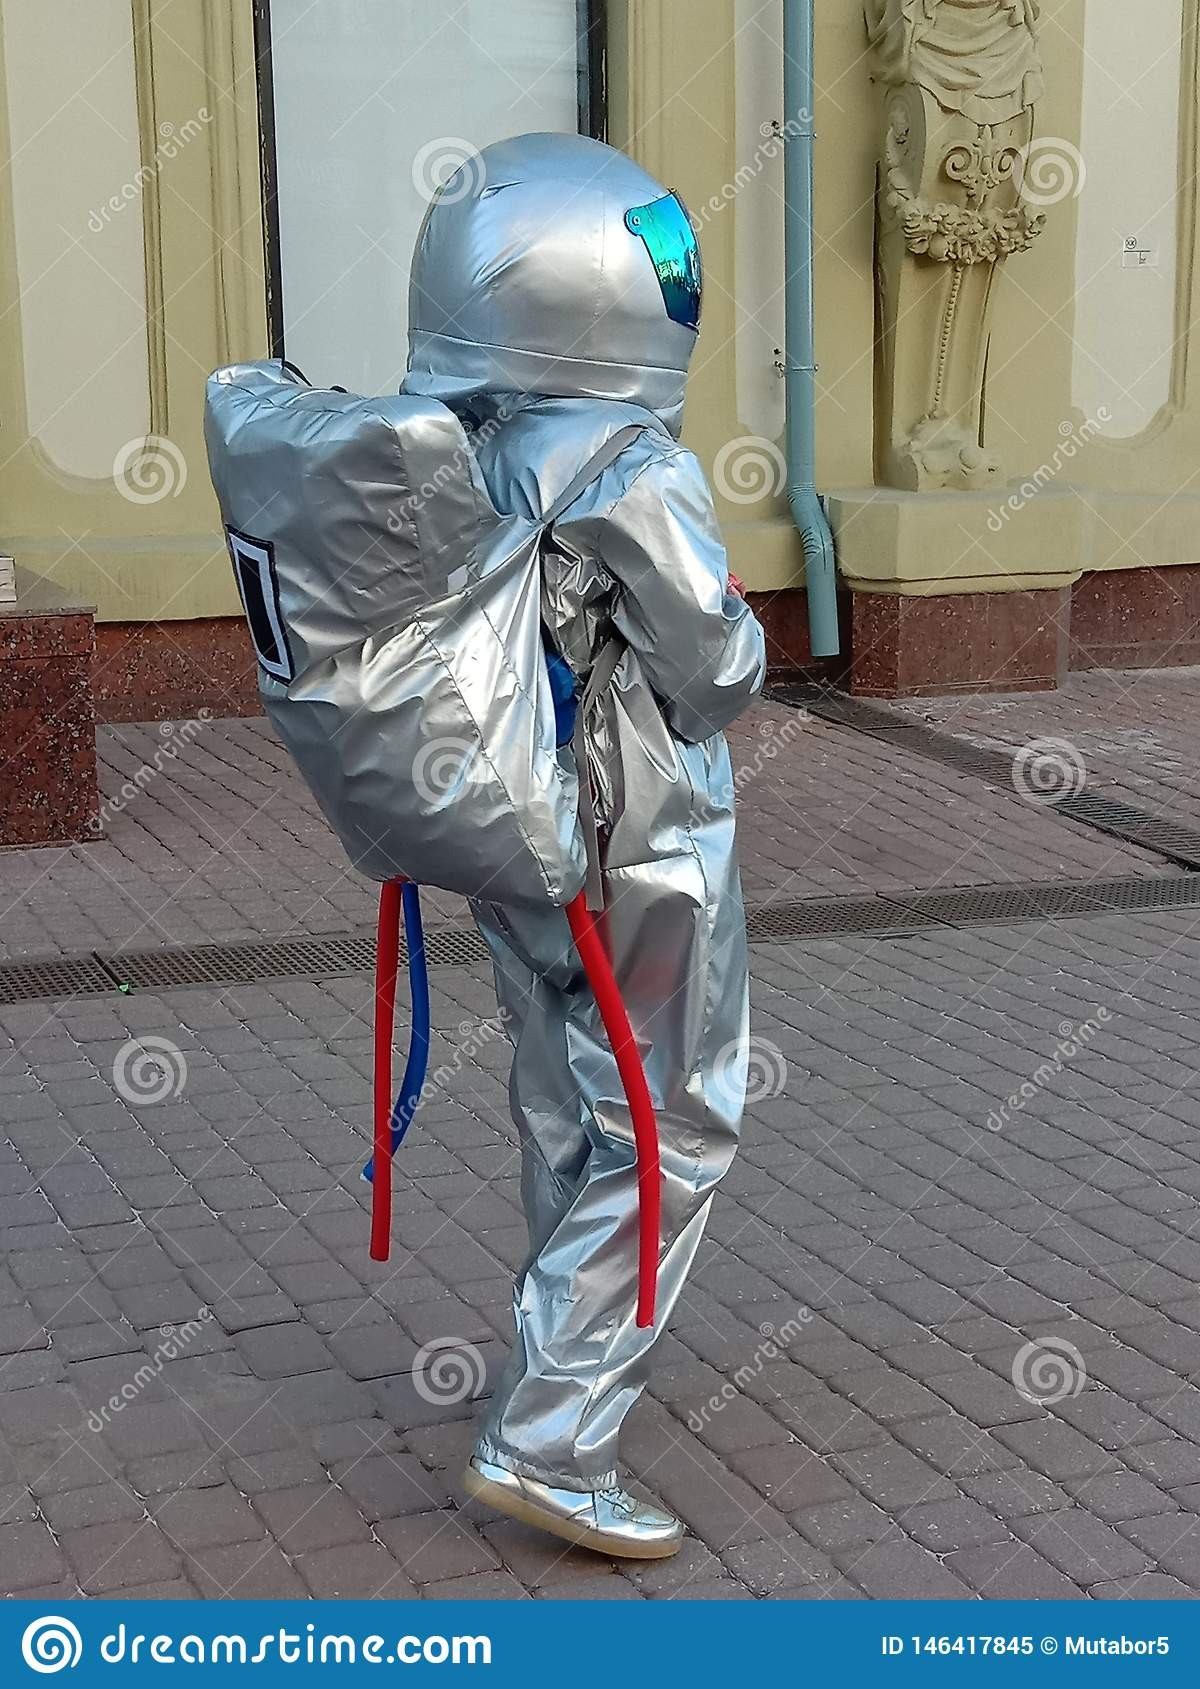 A young girl dressed as an astronaut distributes ads on a pedestrian street in the city. Promotion of services.